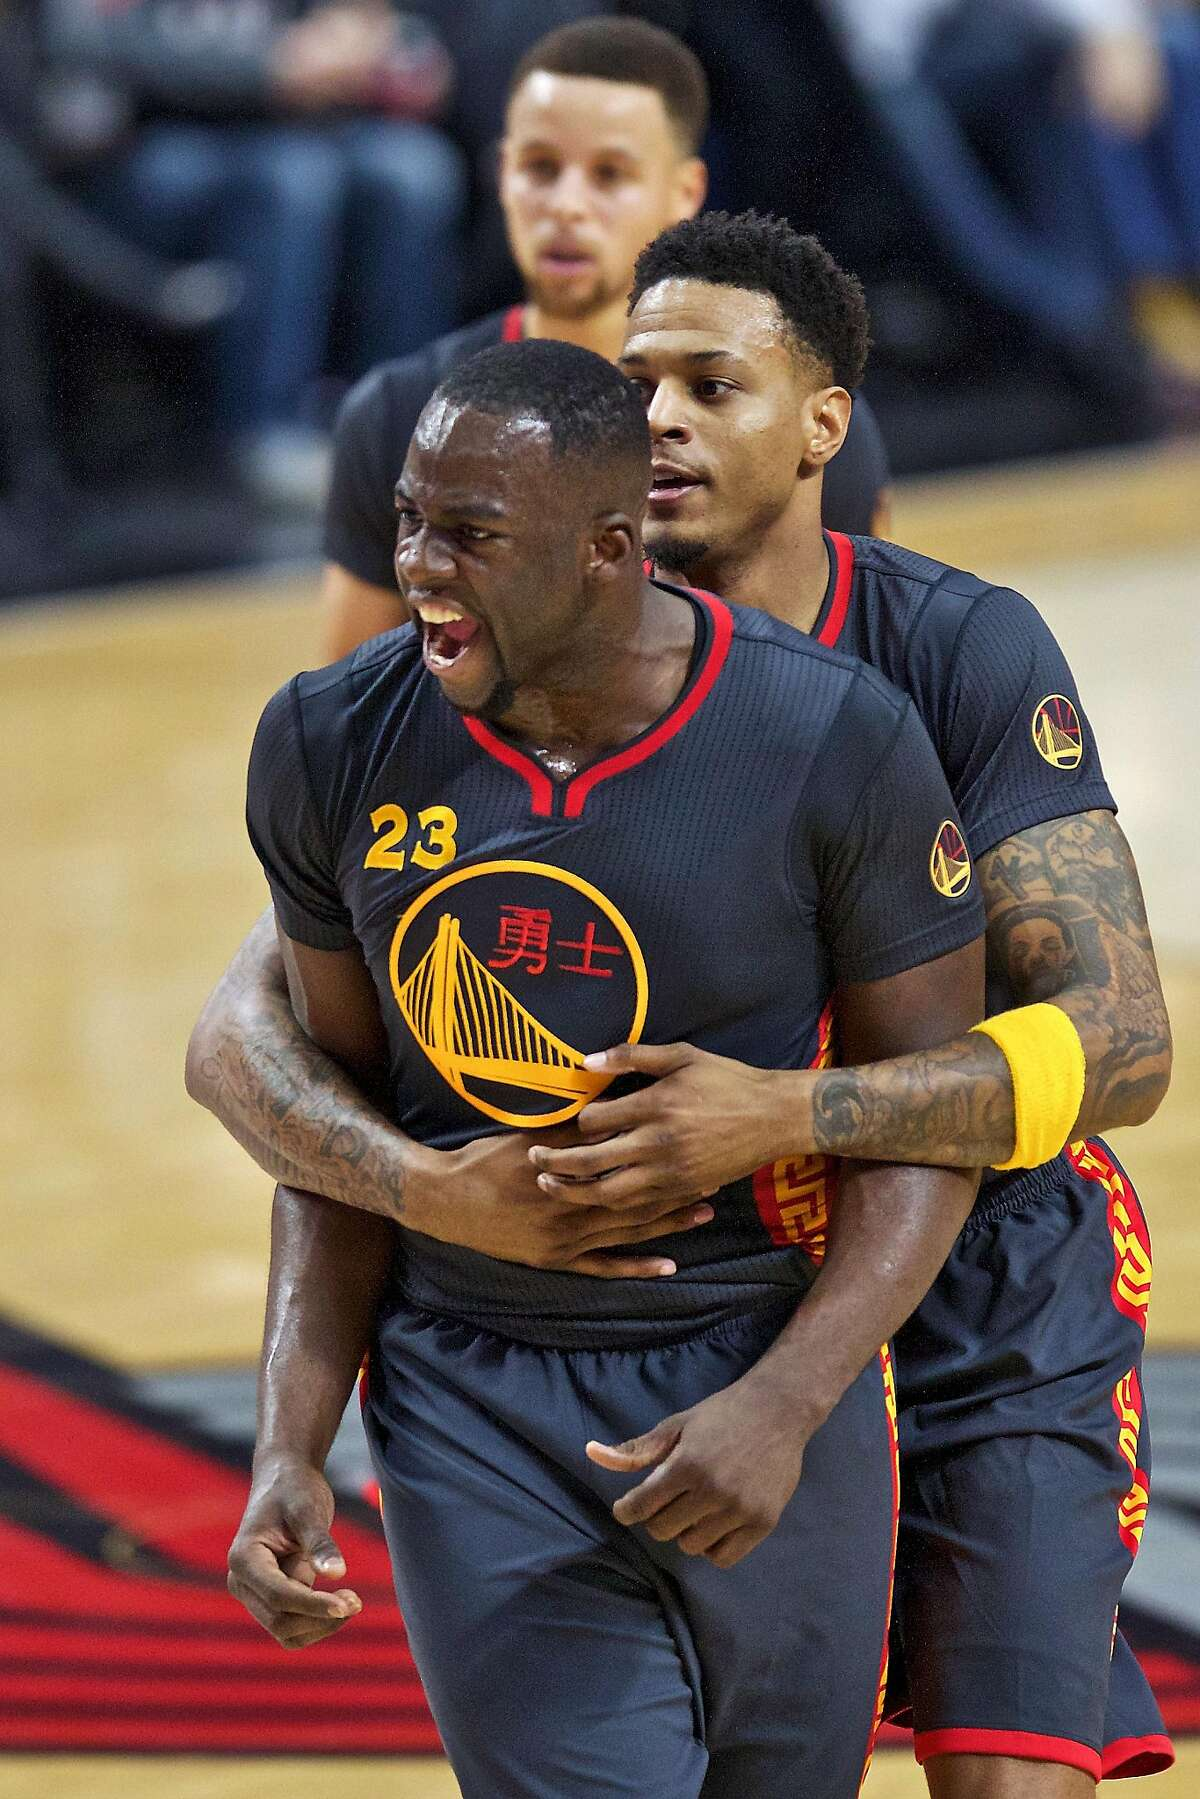 Golden State Warriors forward Draymond Green, left, reacts to a foul call and is held back by forward Brandon Rush, right, during the first half of an NBA basketball game against the Portland Trail Blazers in Portland, Ore., Friday, Feb. 19, 2016. (AP Photo/Craig Mitchelldyer)